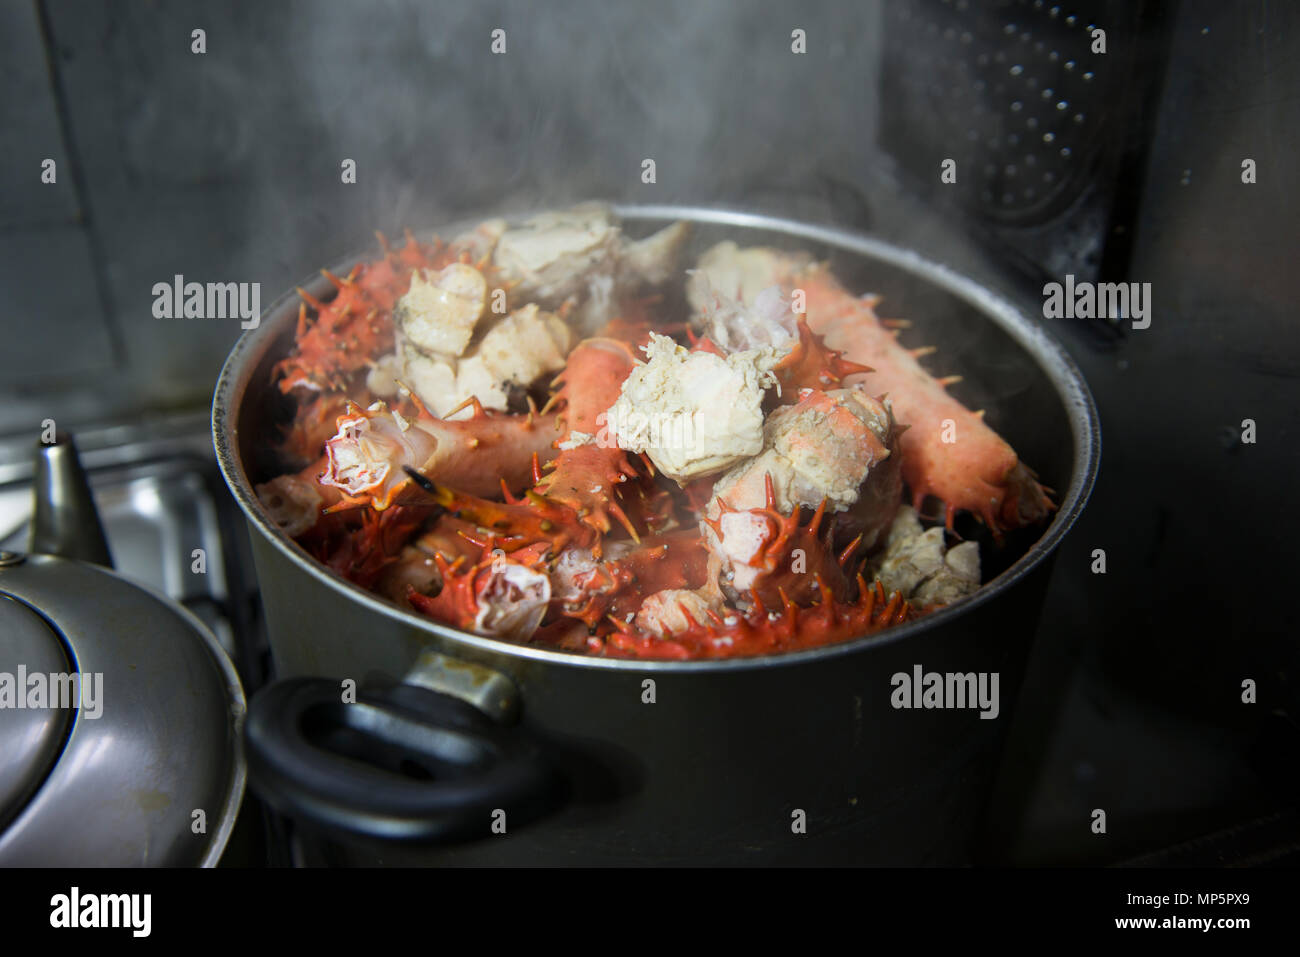 King crab legs cooking in a pan - Stock Image